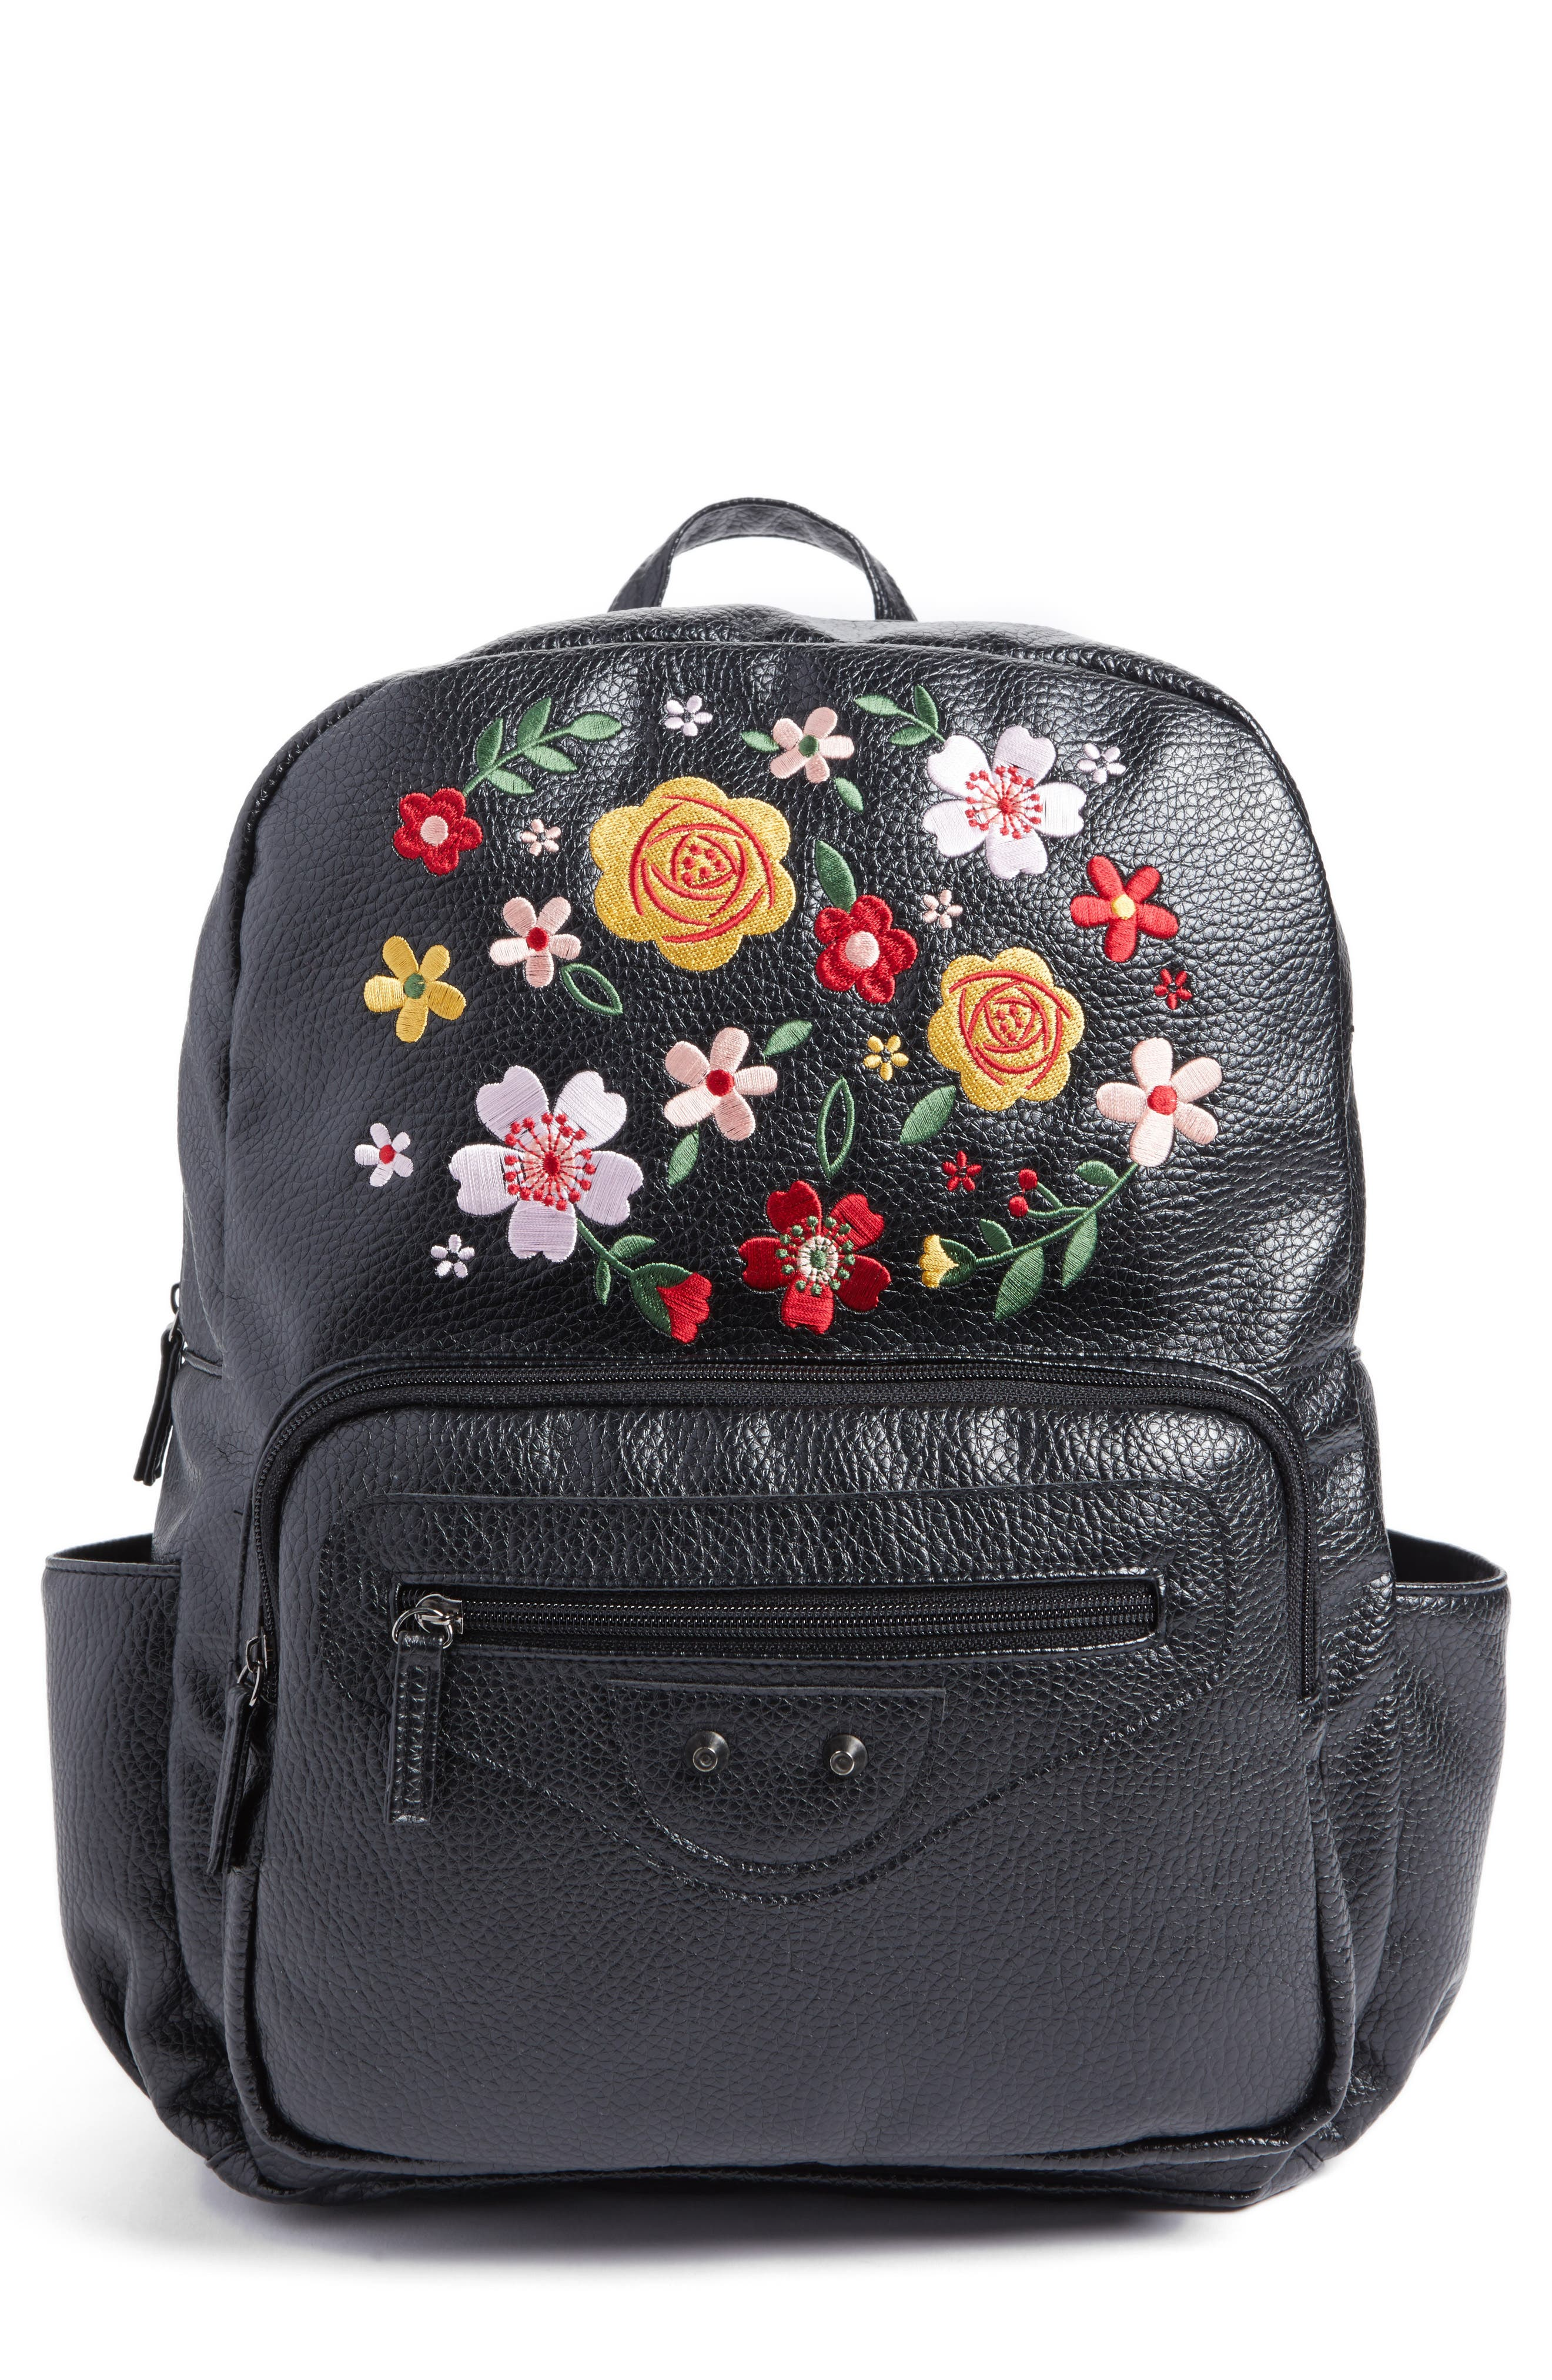 Embroidered Backpack,                             Main thumbnail 1, color,                             001